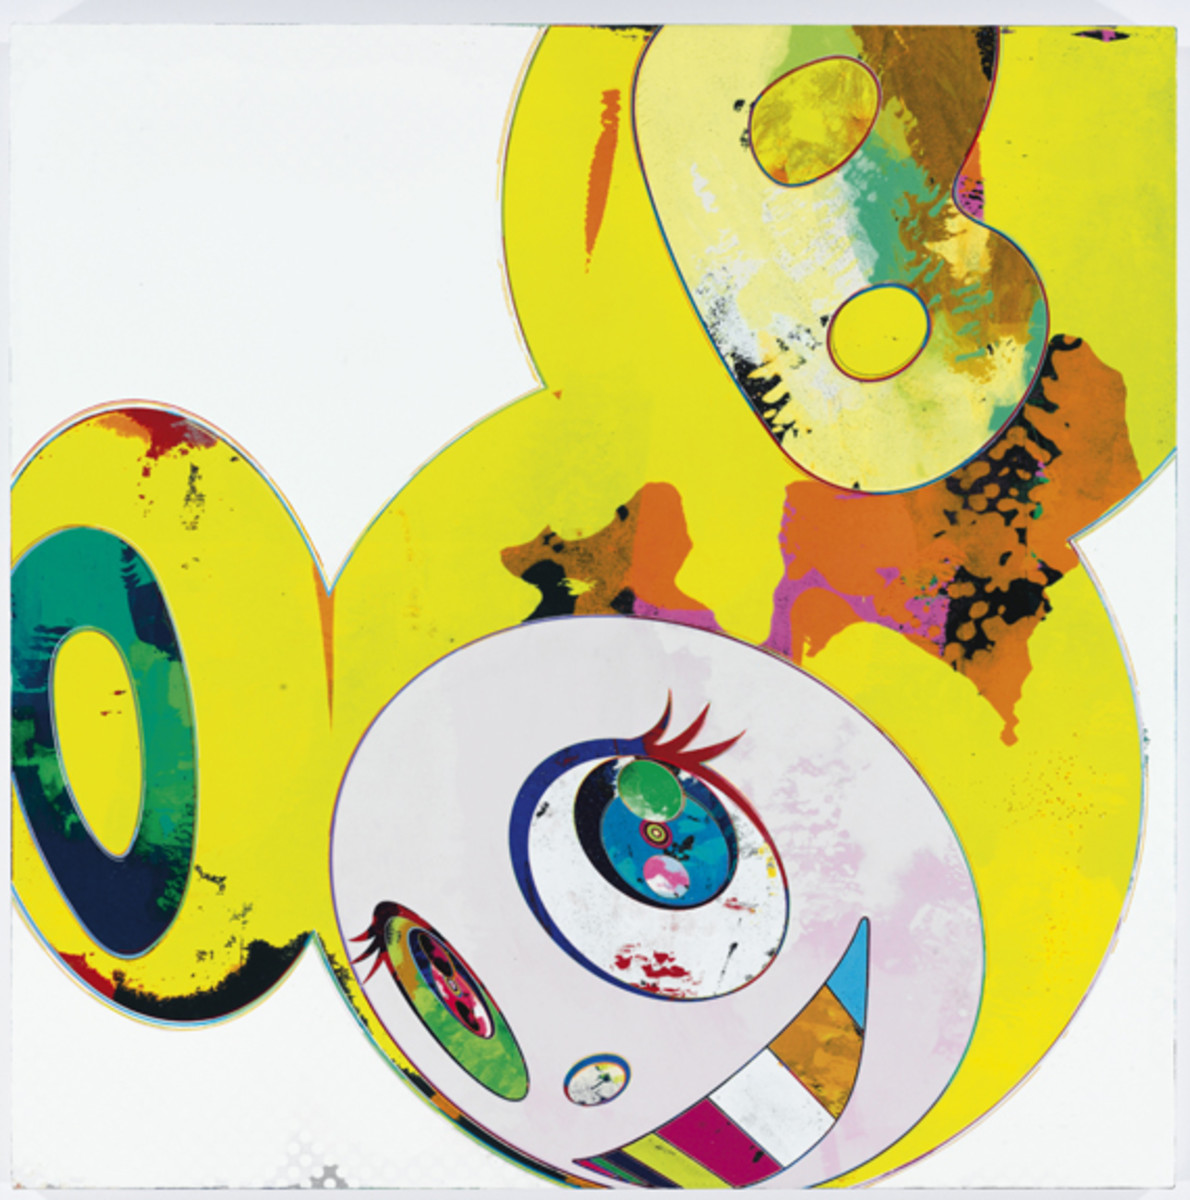 Takashi Murakami - And Then, And Then And Then And Then And Then. Yellow Universe(C)2011 Kaikai Kiki Co., Ltd. All rights reserved